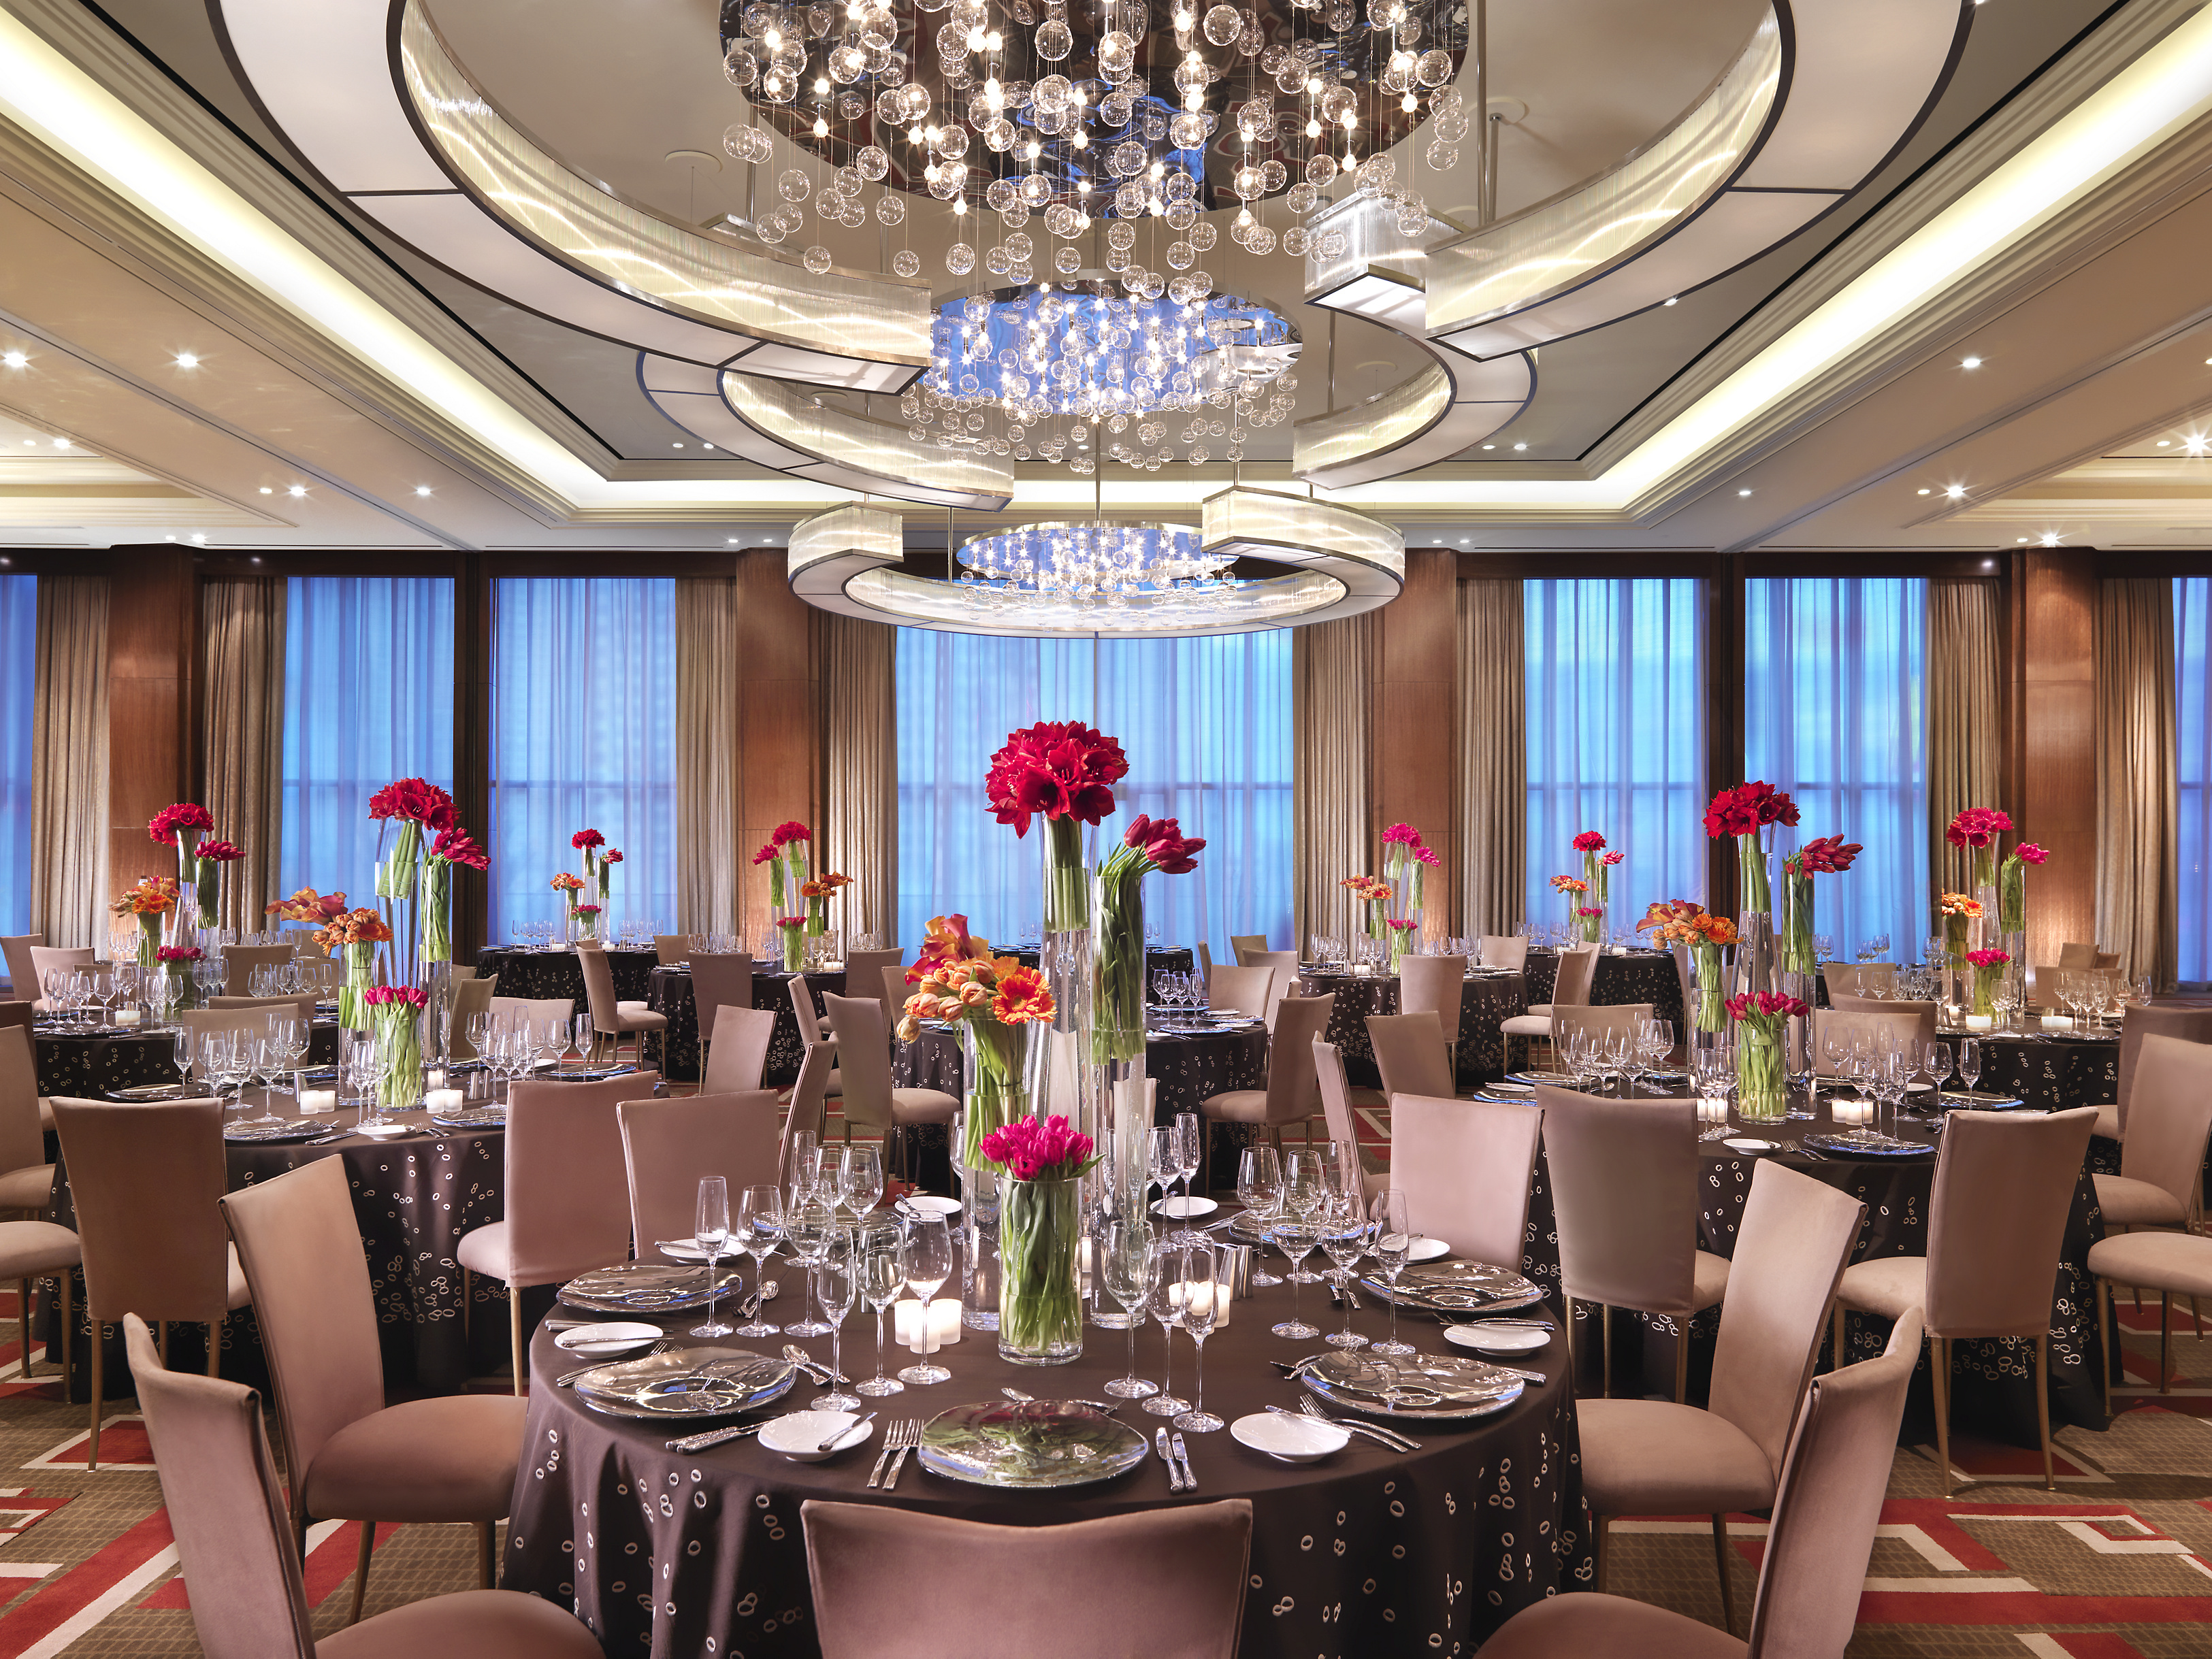 las-vegas-event-room-ballroom-banquet-tables-1